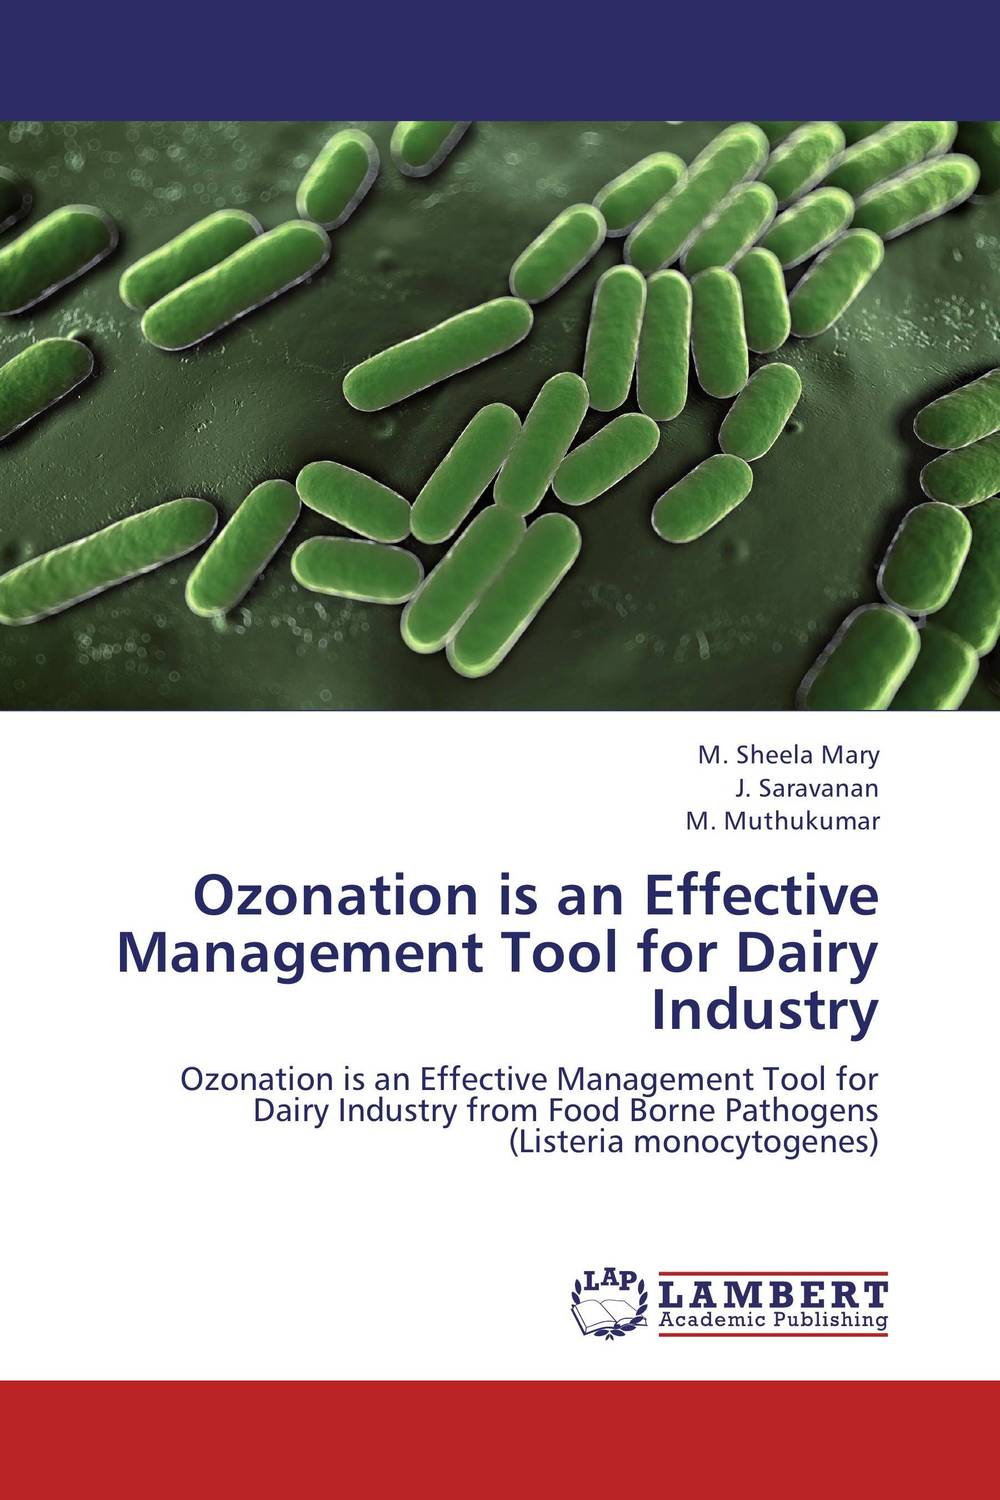 Ozonation is an Effective Management Tool for Dairy Industry shahzeb anwar and zeeshan abbas awan effective green management